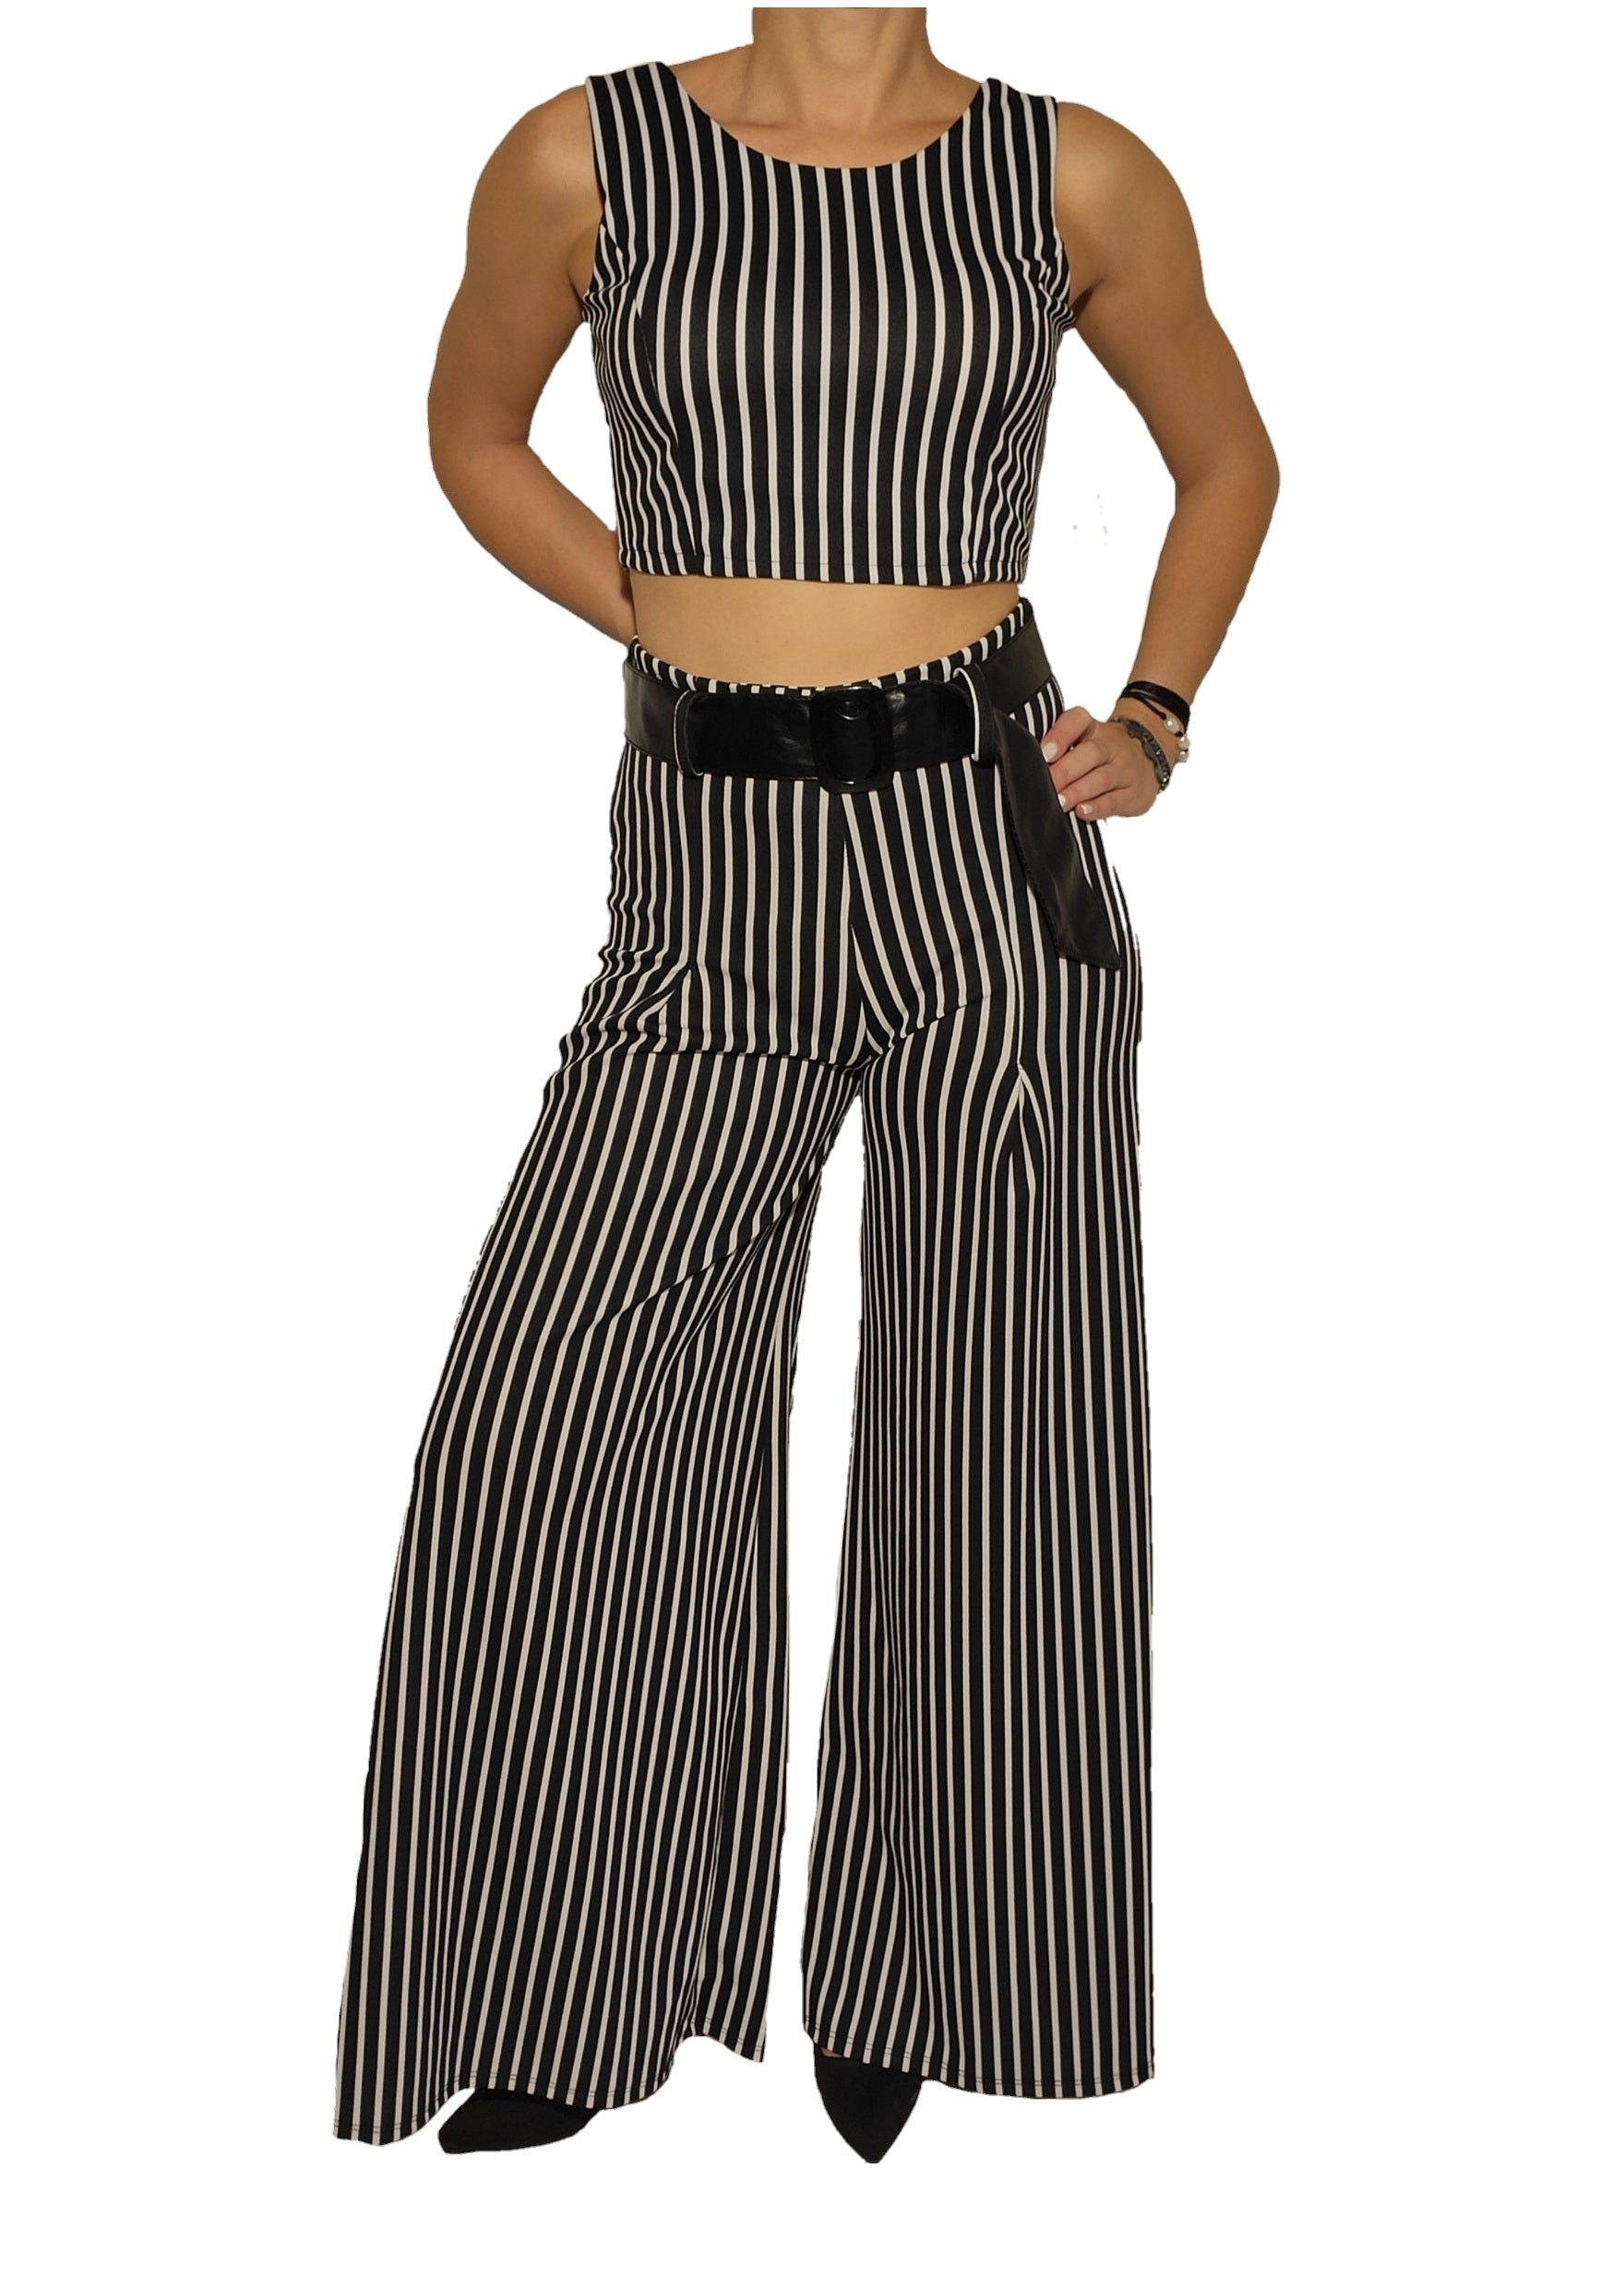 a-woman-wears-a-crop-top-and-a-trouser-front-side